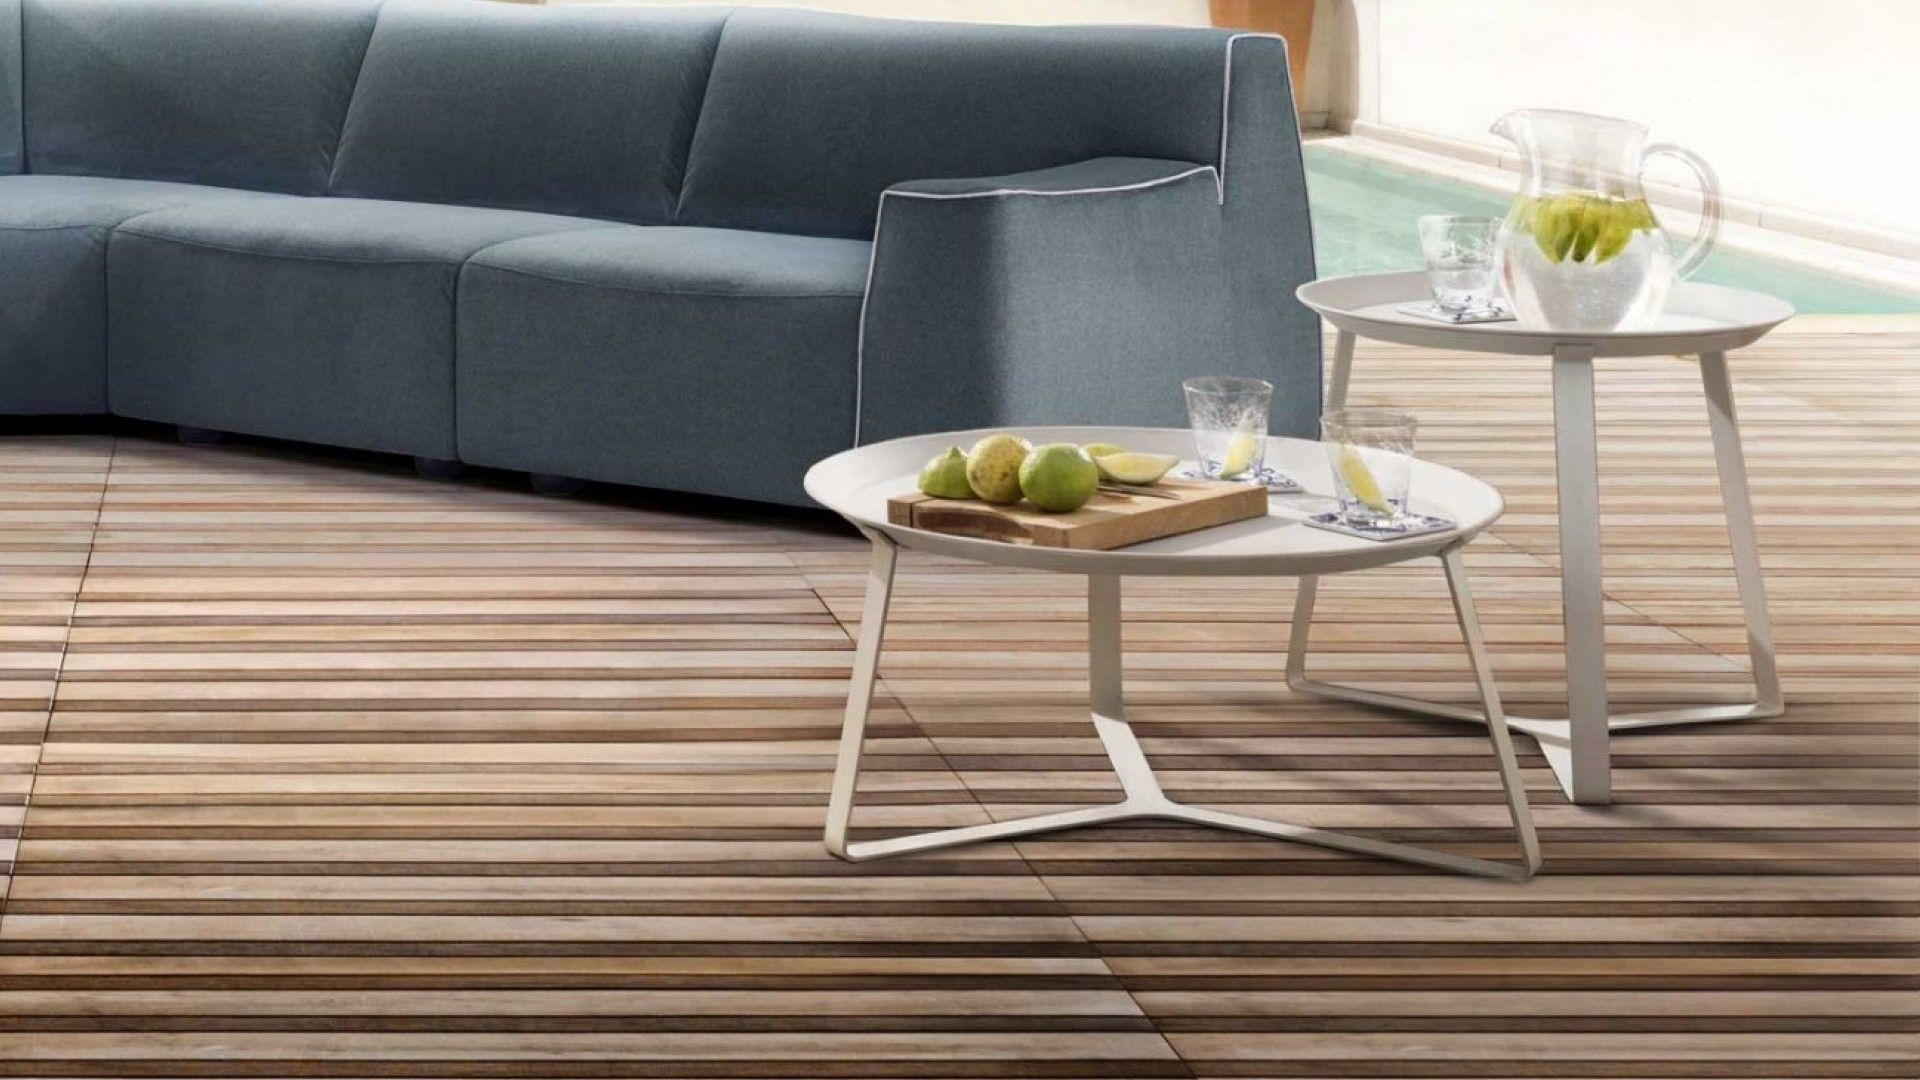 Natuzzi Couchtisch Glas Natuzzi Viavai Coffee Tables Casa Futura Table Furniture